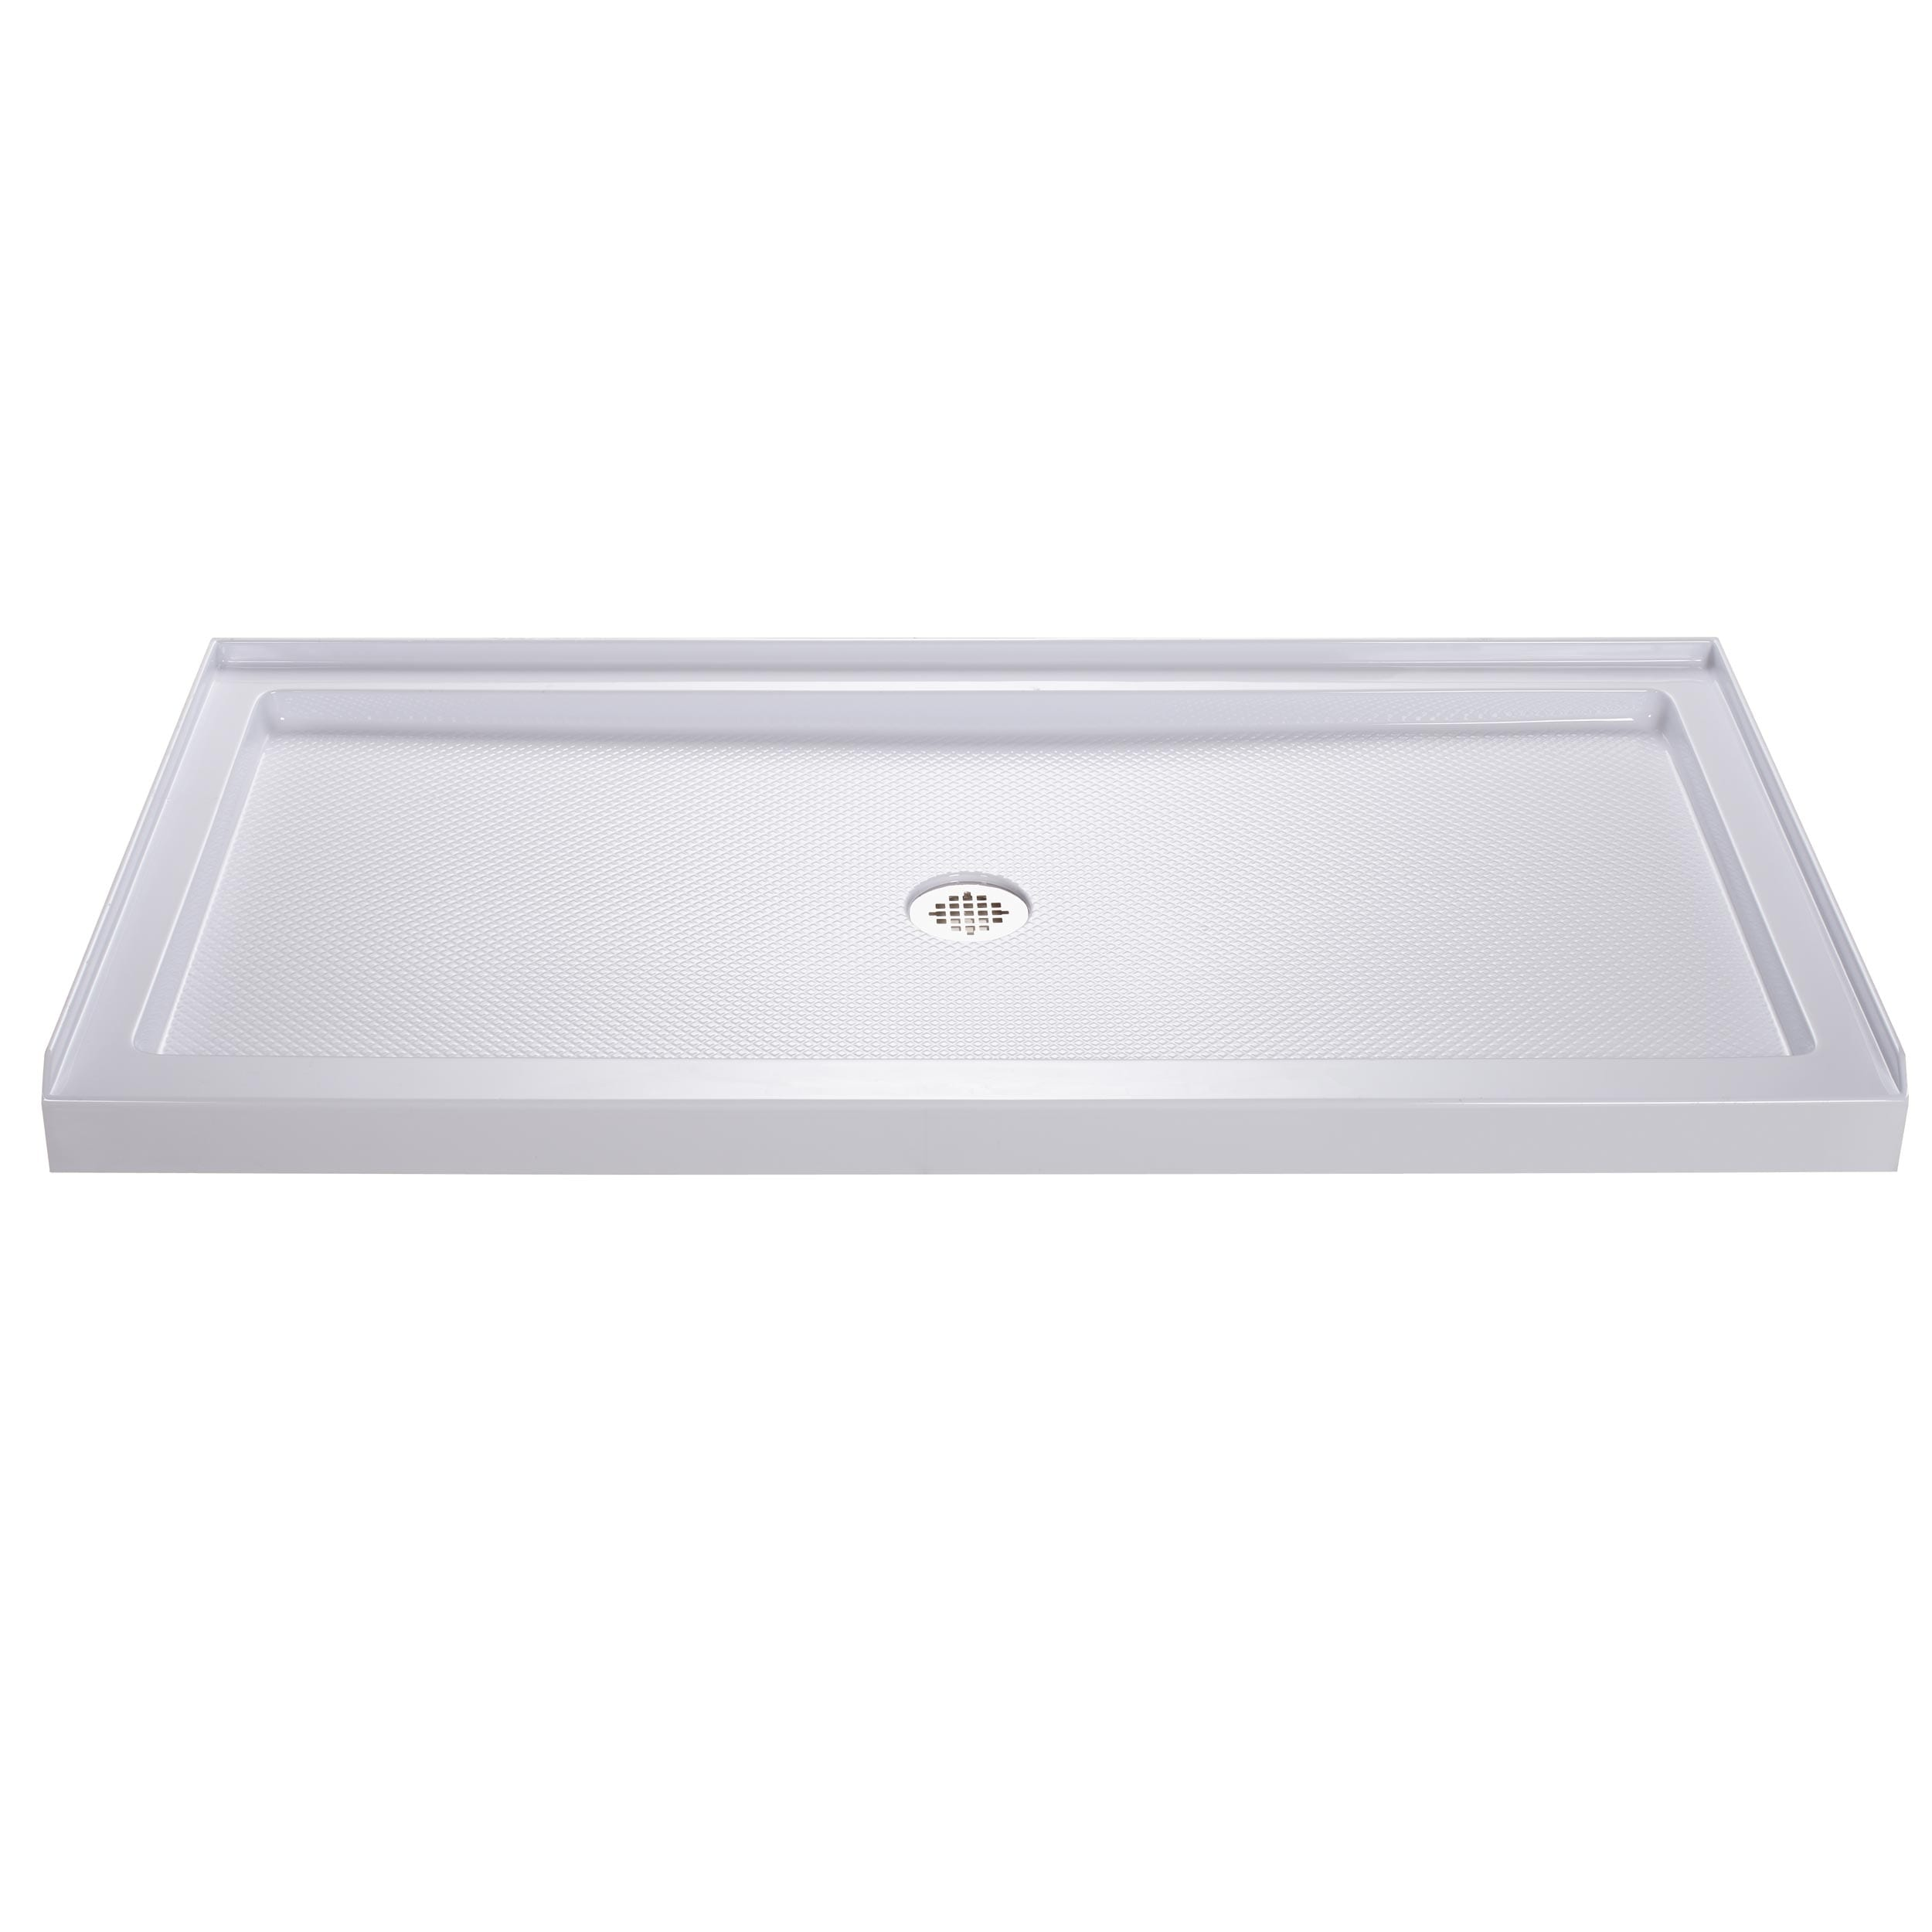 DreamLine 60x34 SlimLine Single Threshold Shower Base